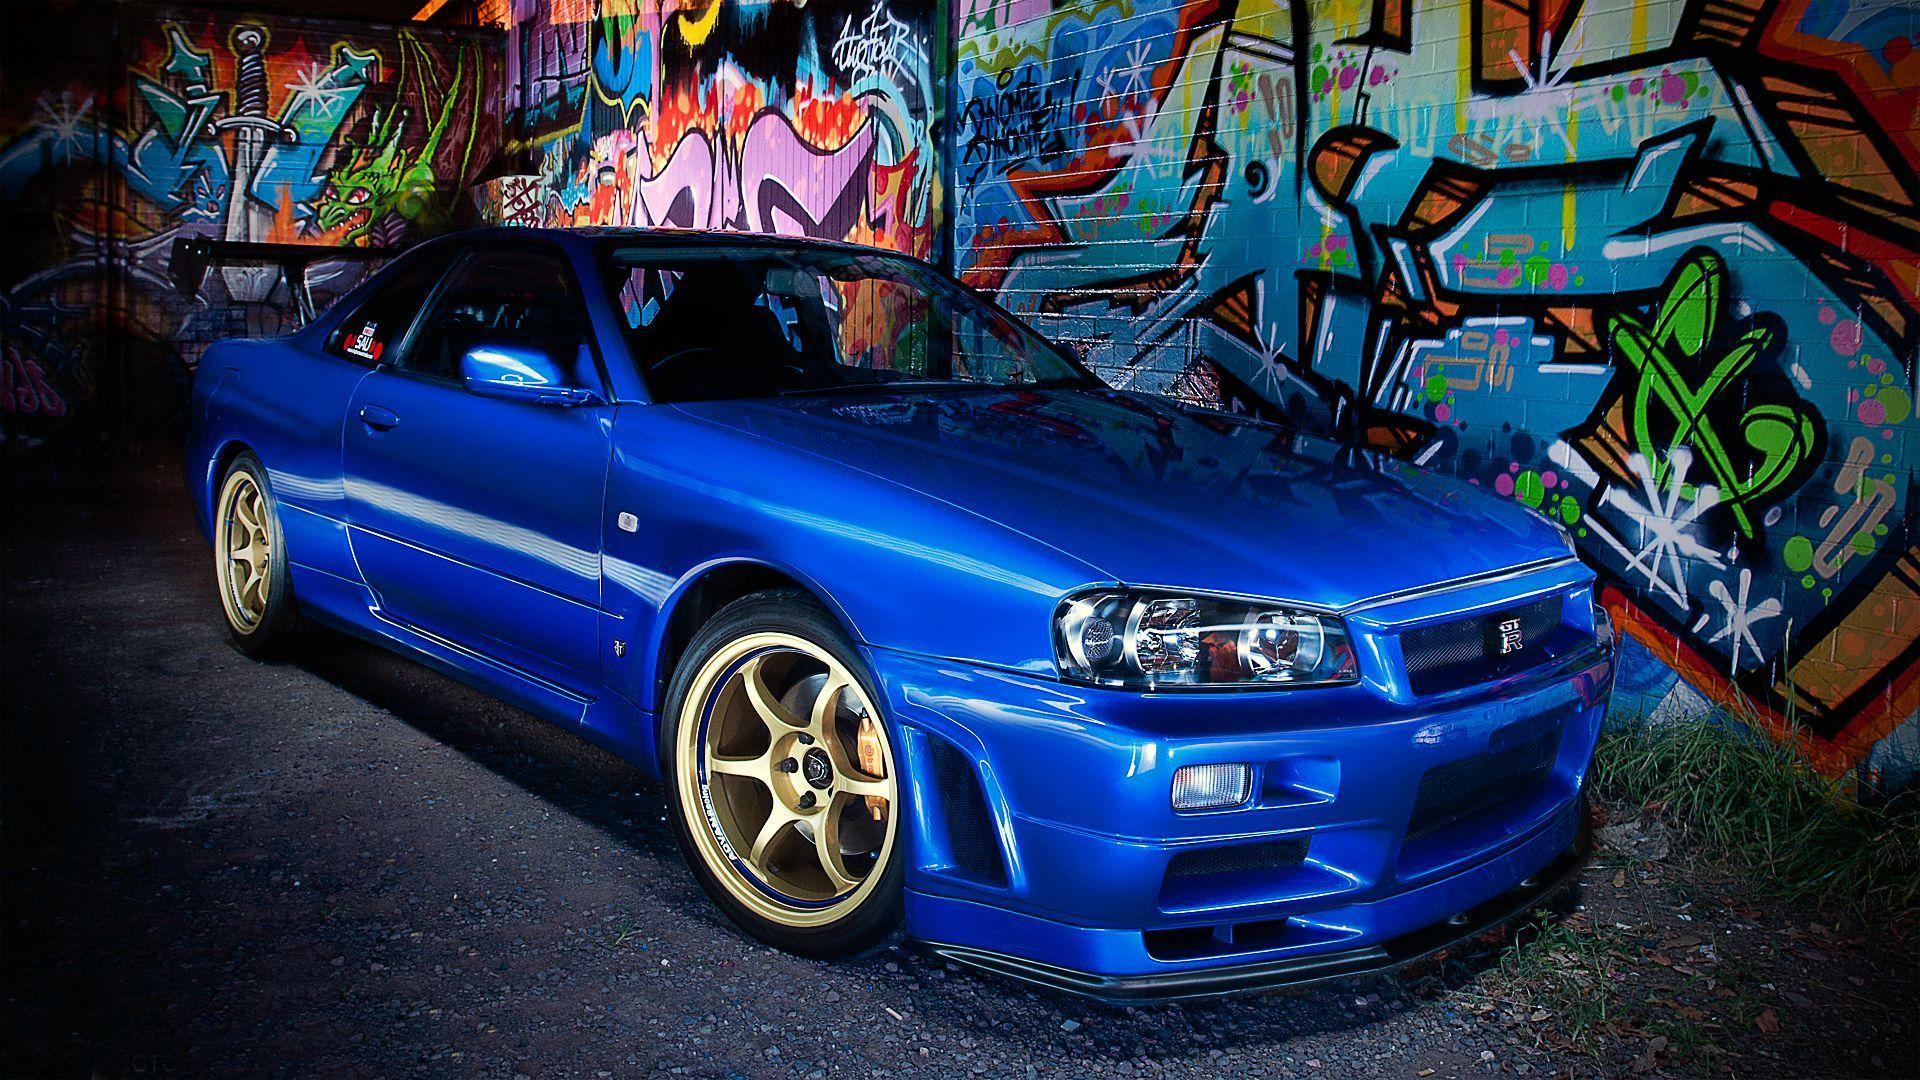 Nissan Skyline Gtr R34 Wallpaper (39+), Download 4K